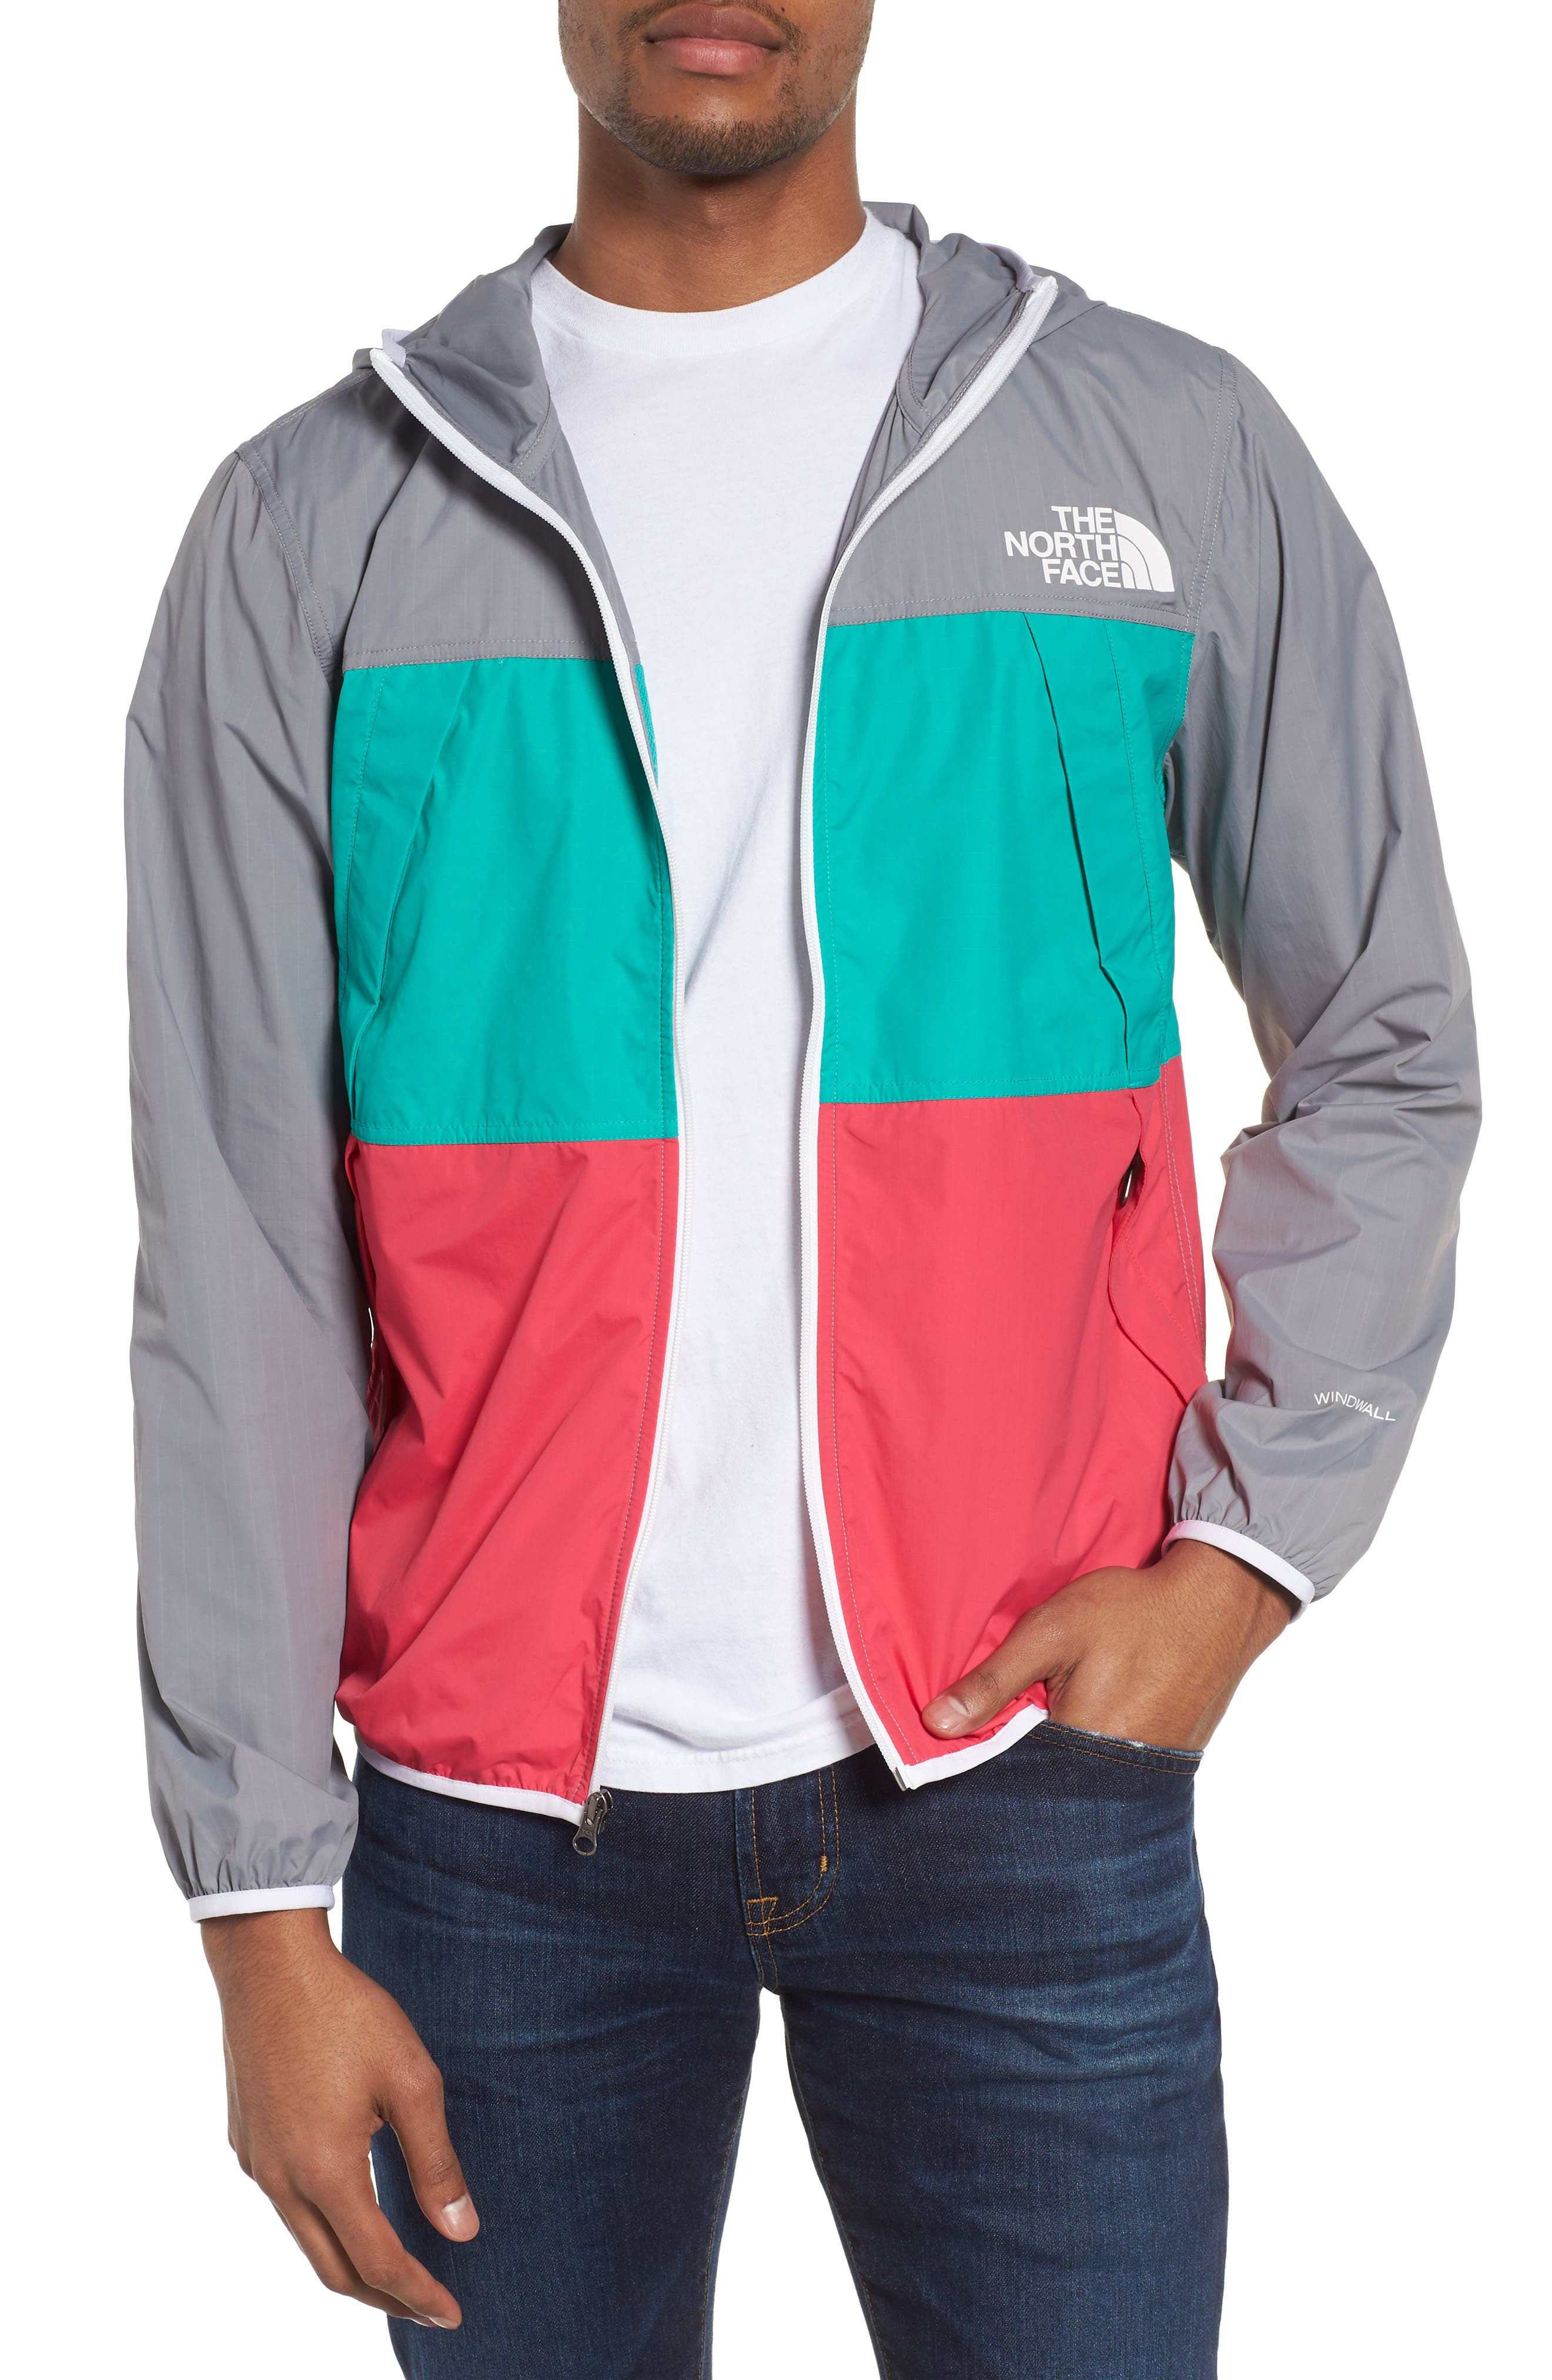 The North Face Telegraph Windbreaker Jacket